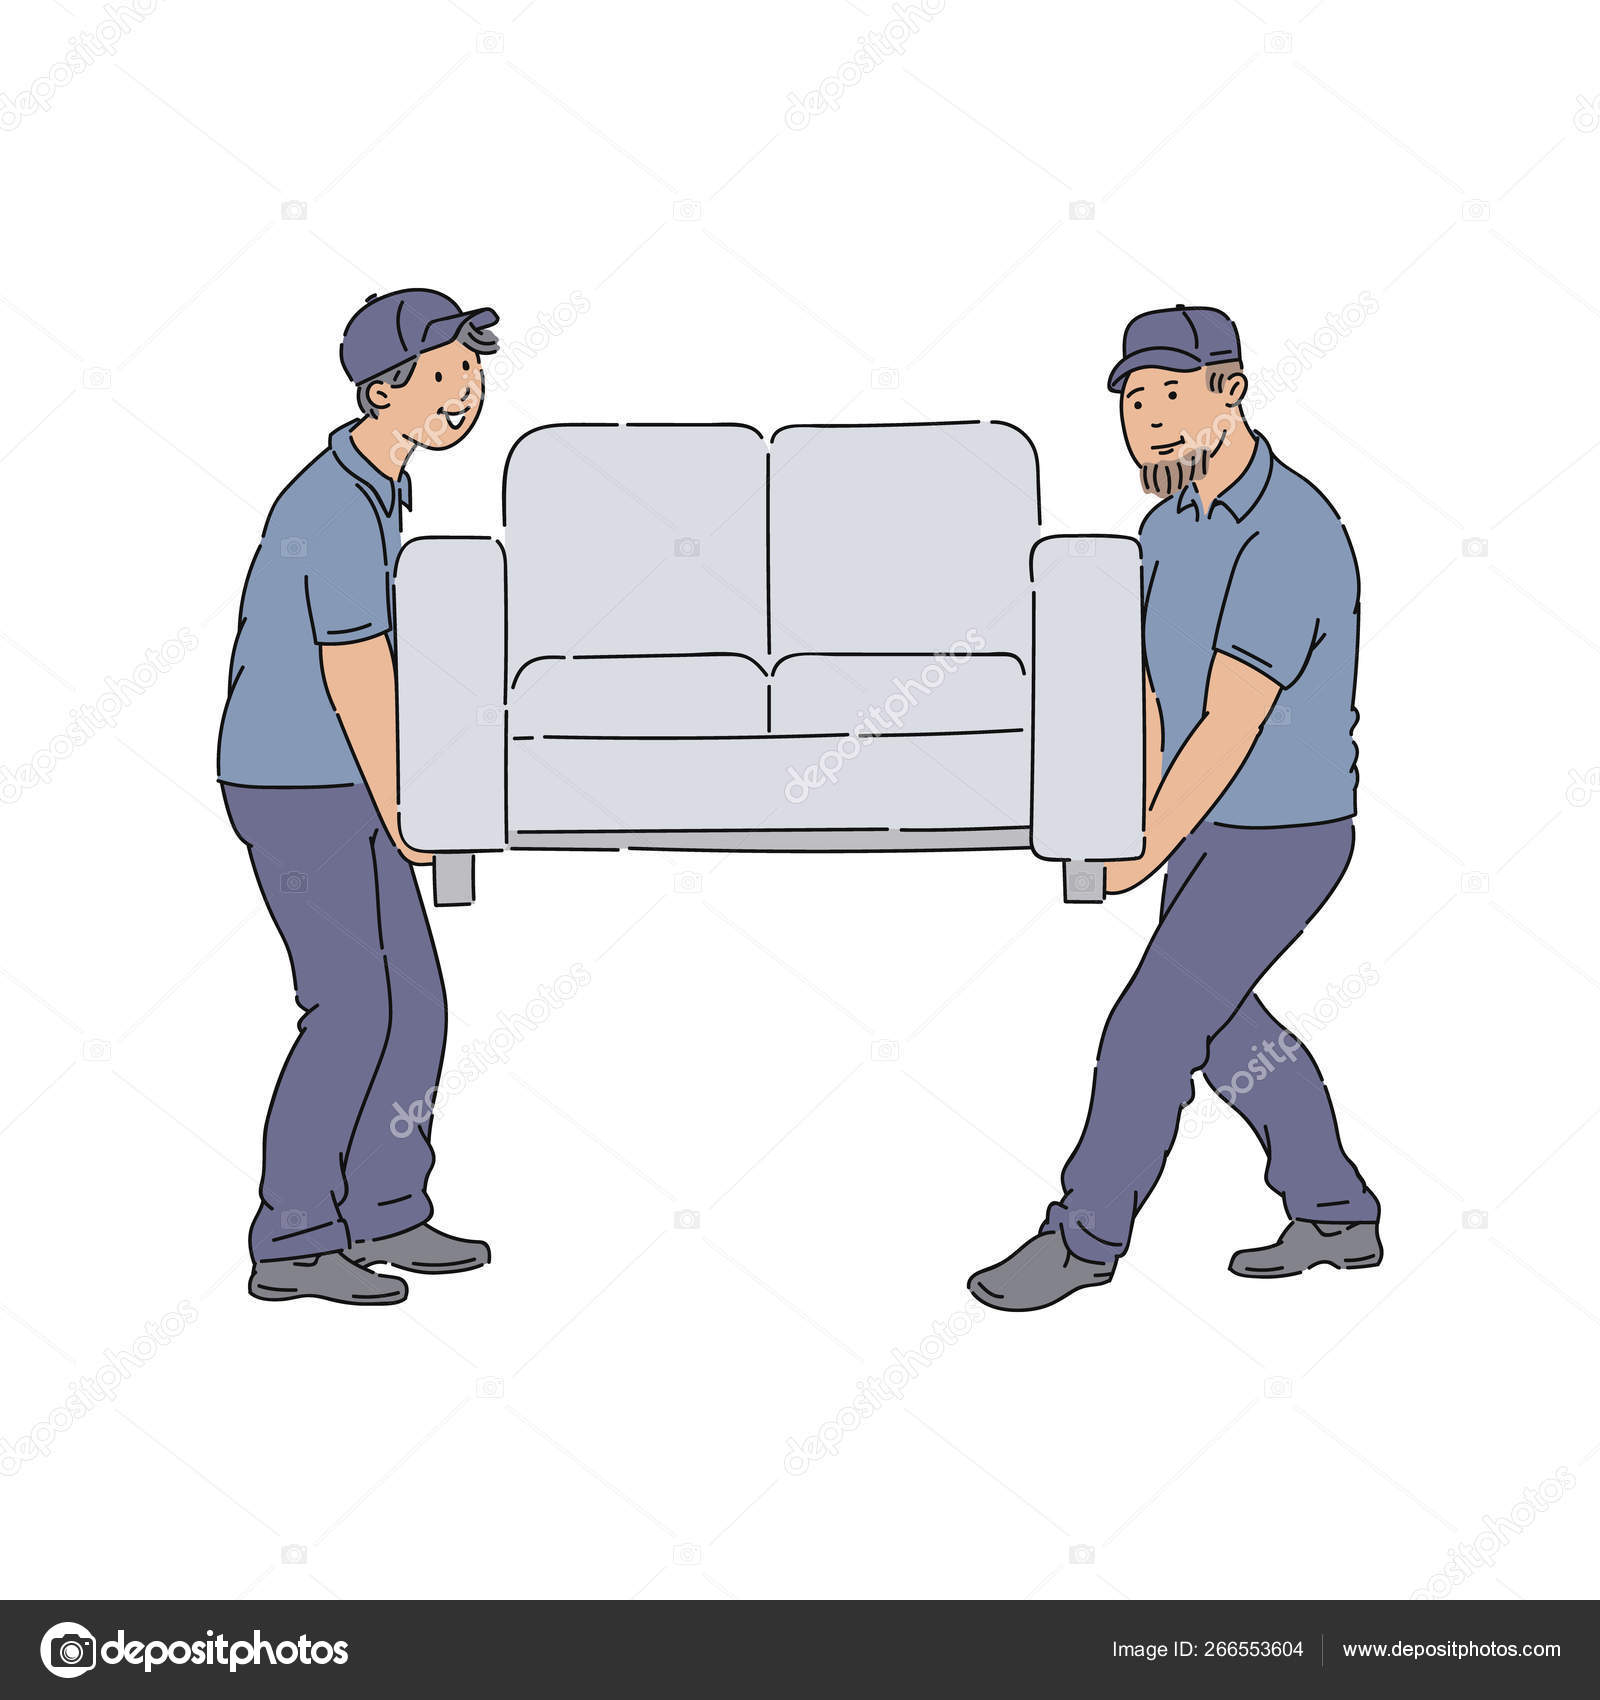 Couch Delivery: Delivery People Moving A Couch, Young Service Men With